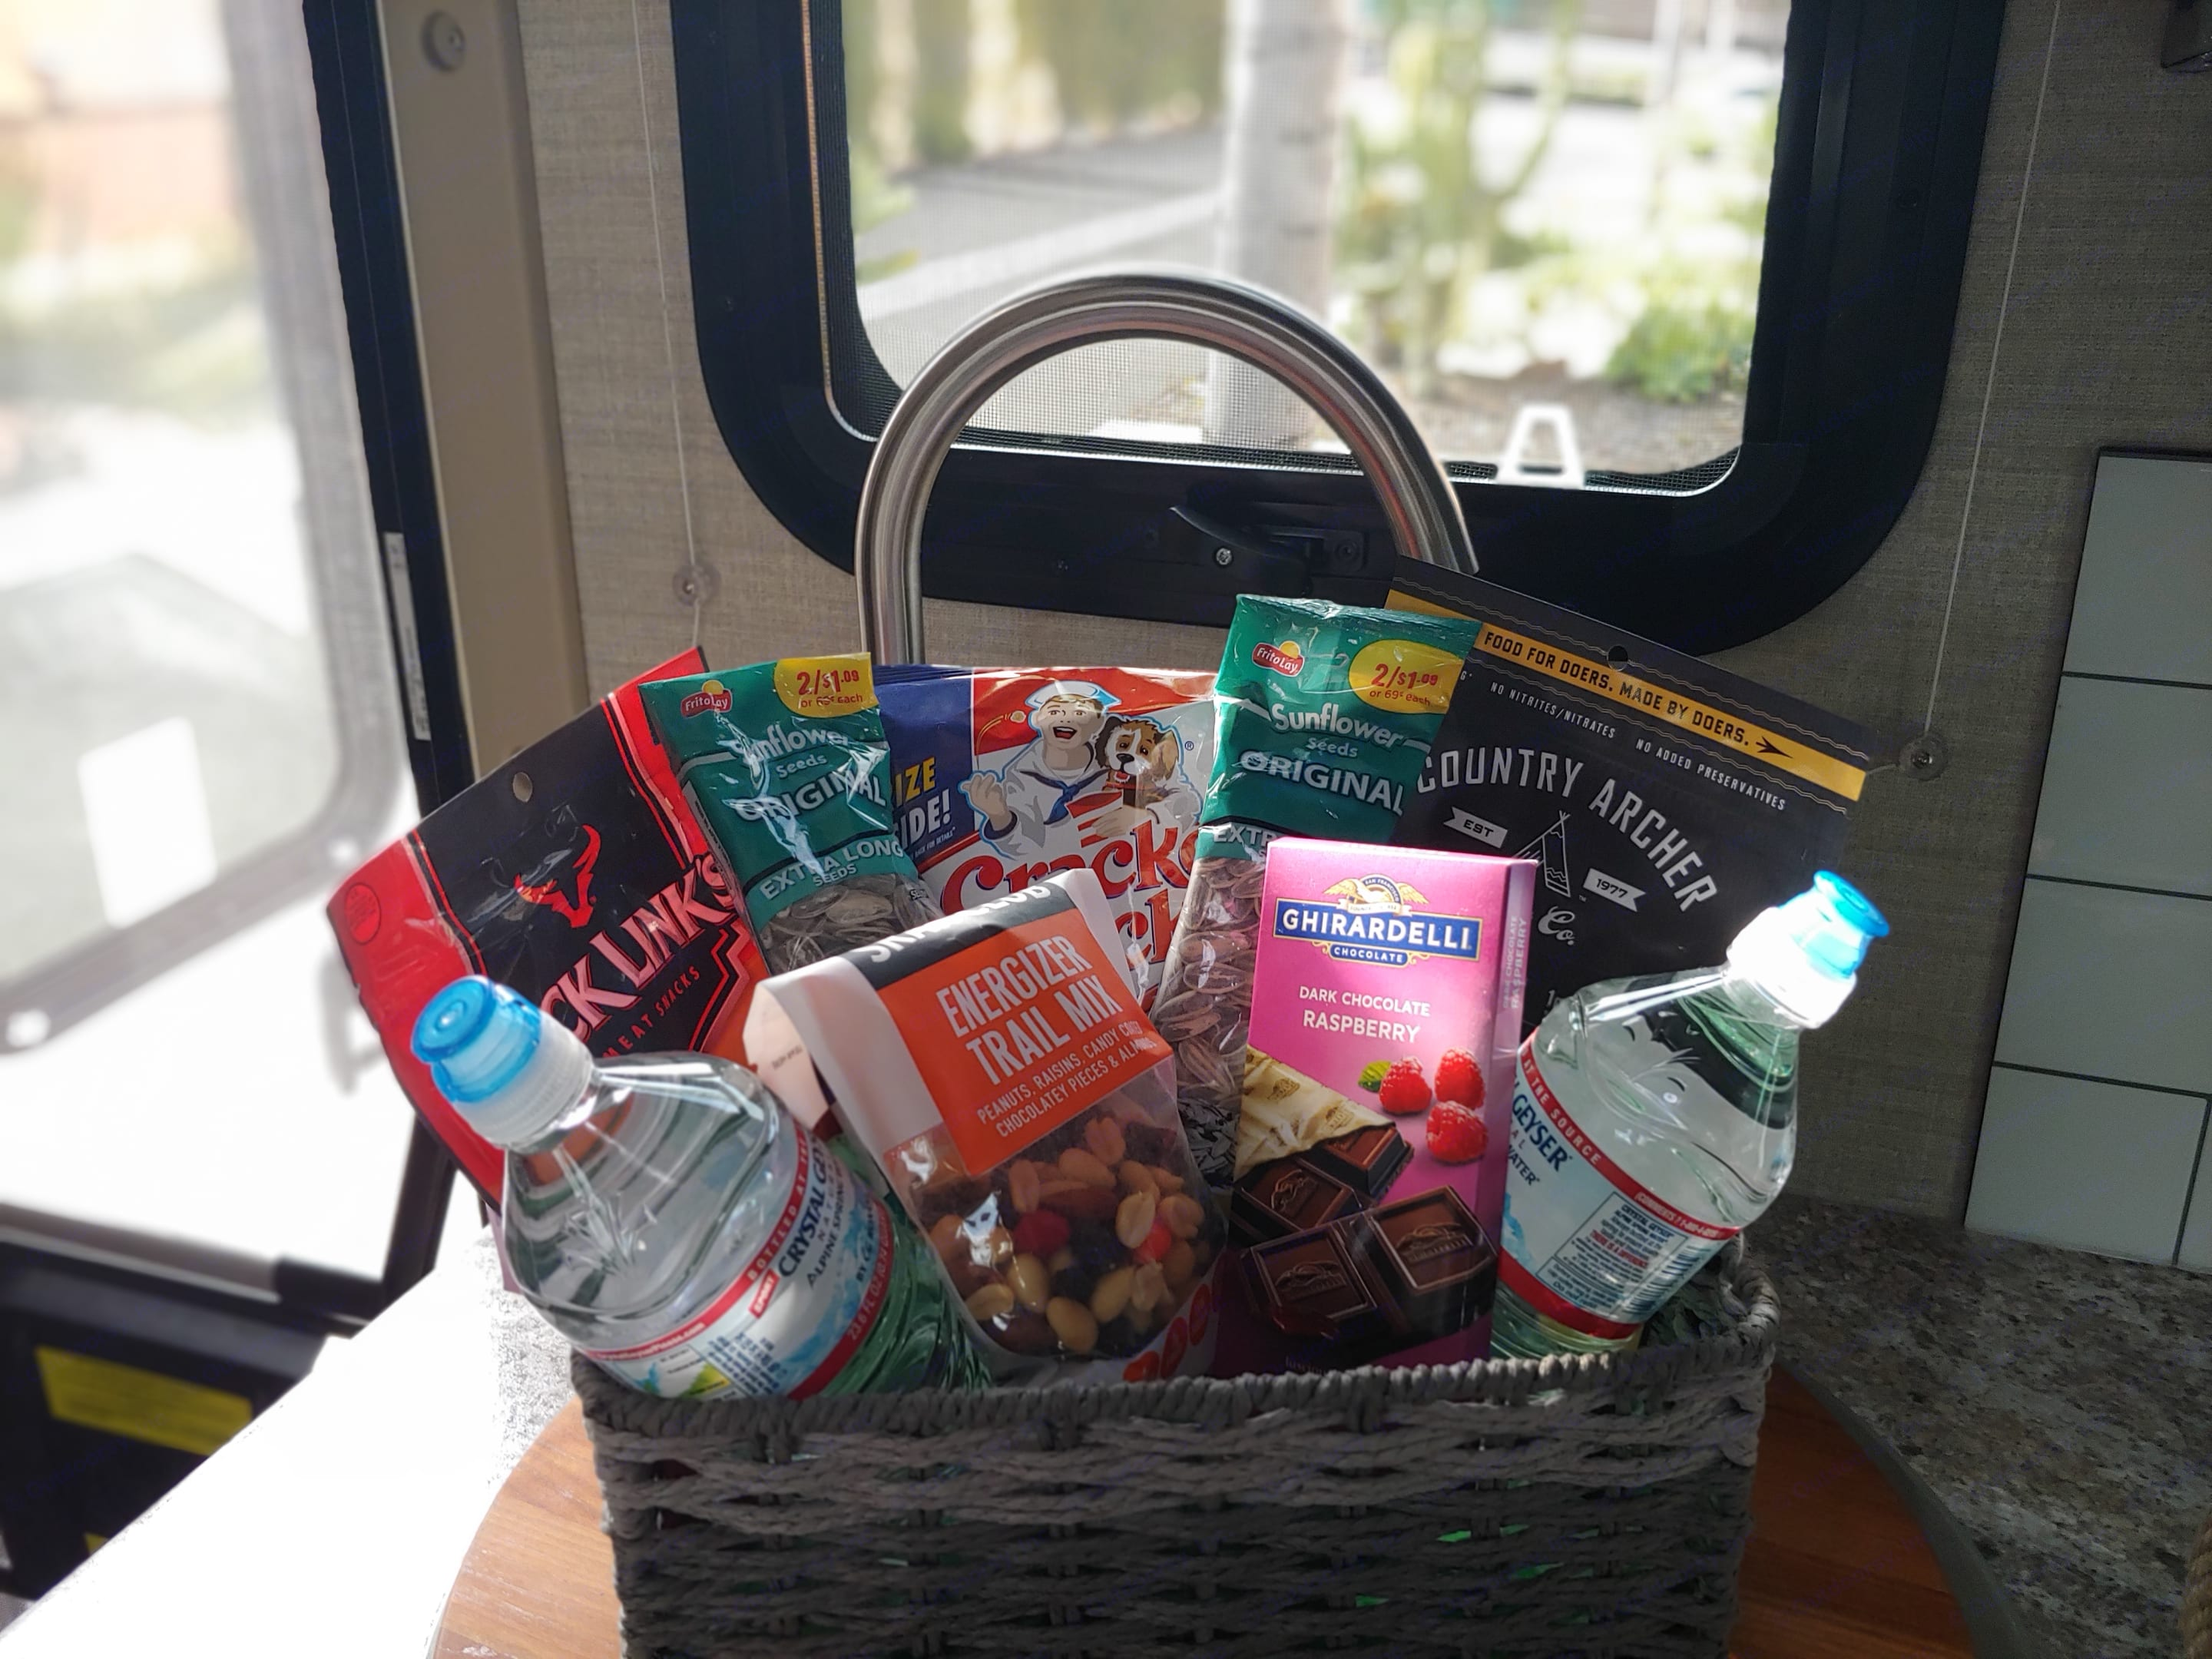 💥NEW💥 Hikers snacking kit. This entire kit includes waters, trail mix, beef jerky, sunflower seeds and popcorn. This is a complementary kit included with your rental. . Jayco Melbourne 2020